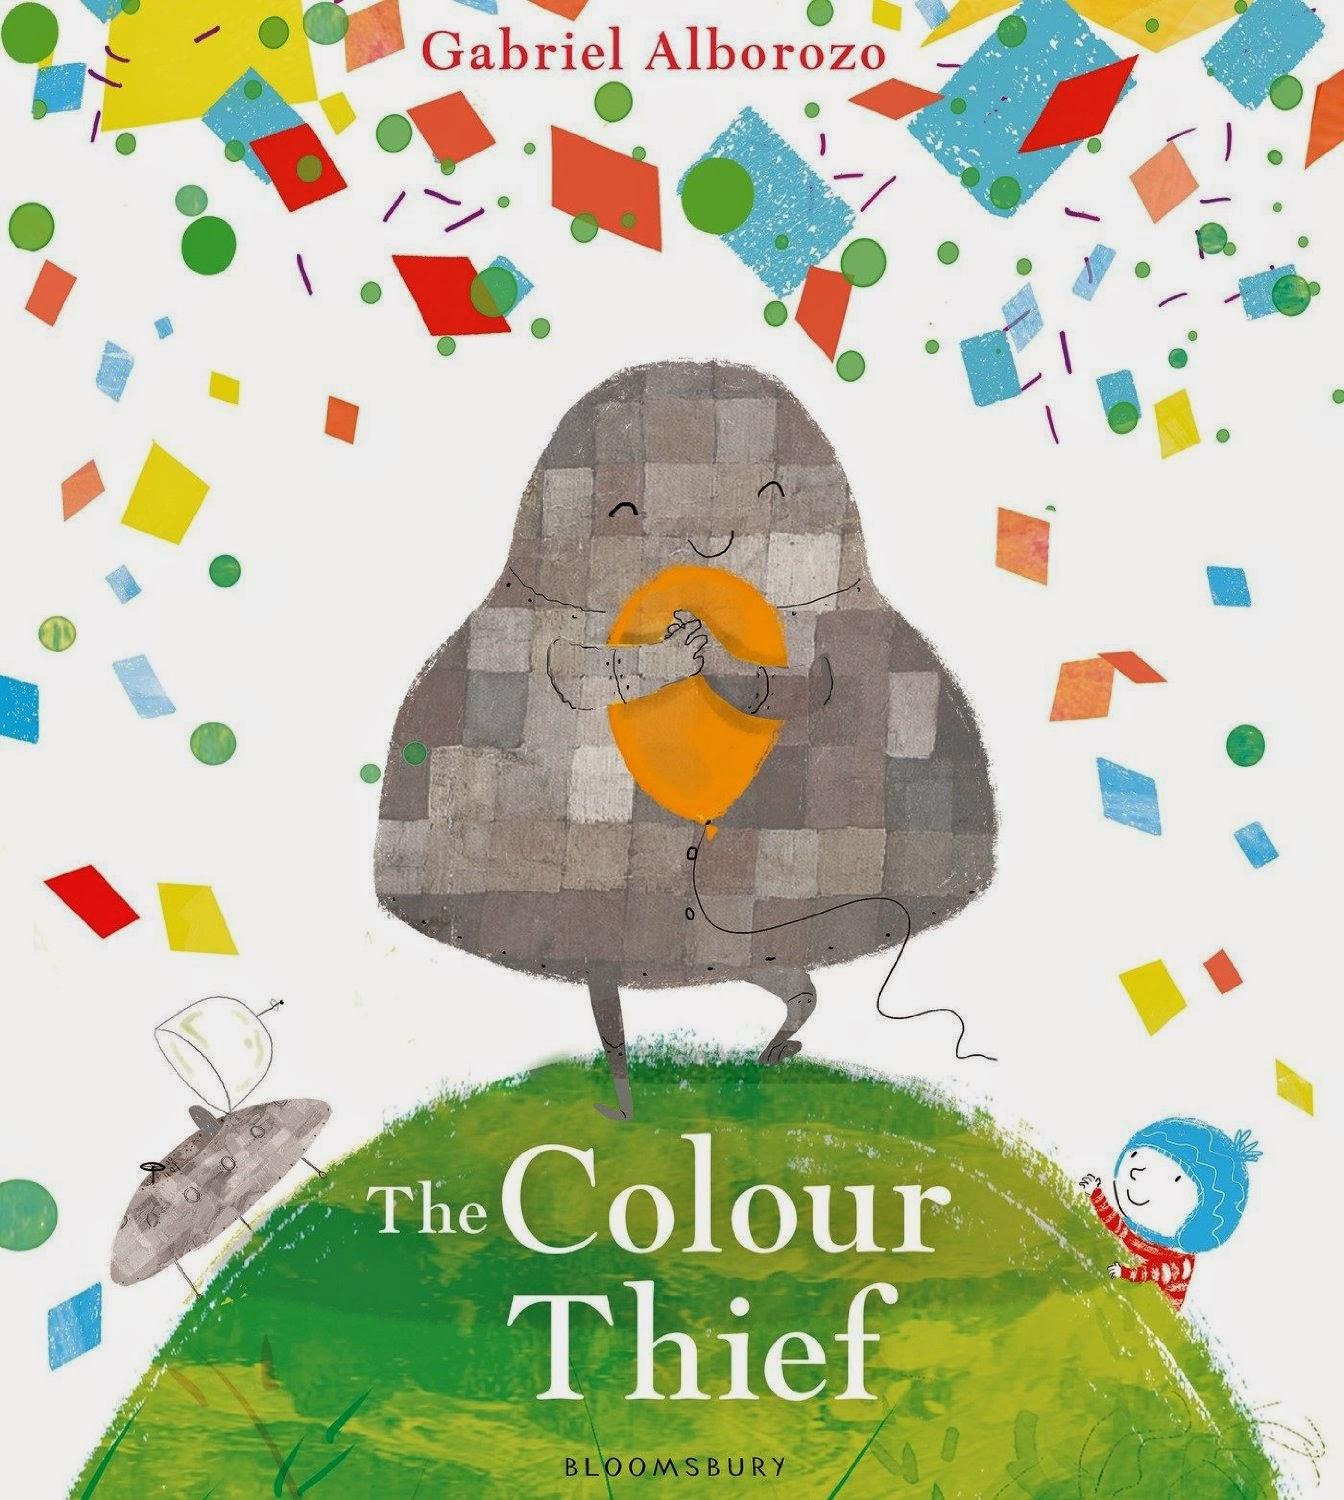 readitdaddys book of the week week ending 22nd august 2014 the colour thief by gabriel alborozo bloomsbury publishing - Colour For Children